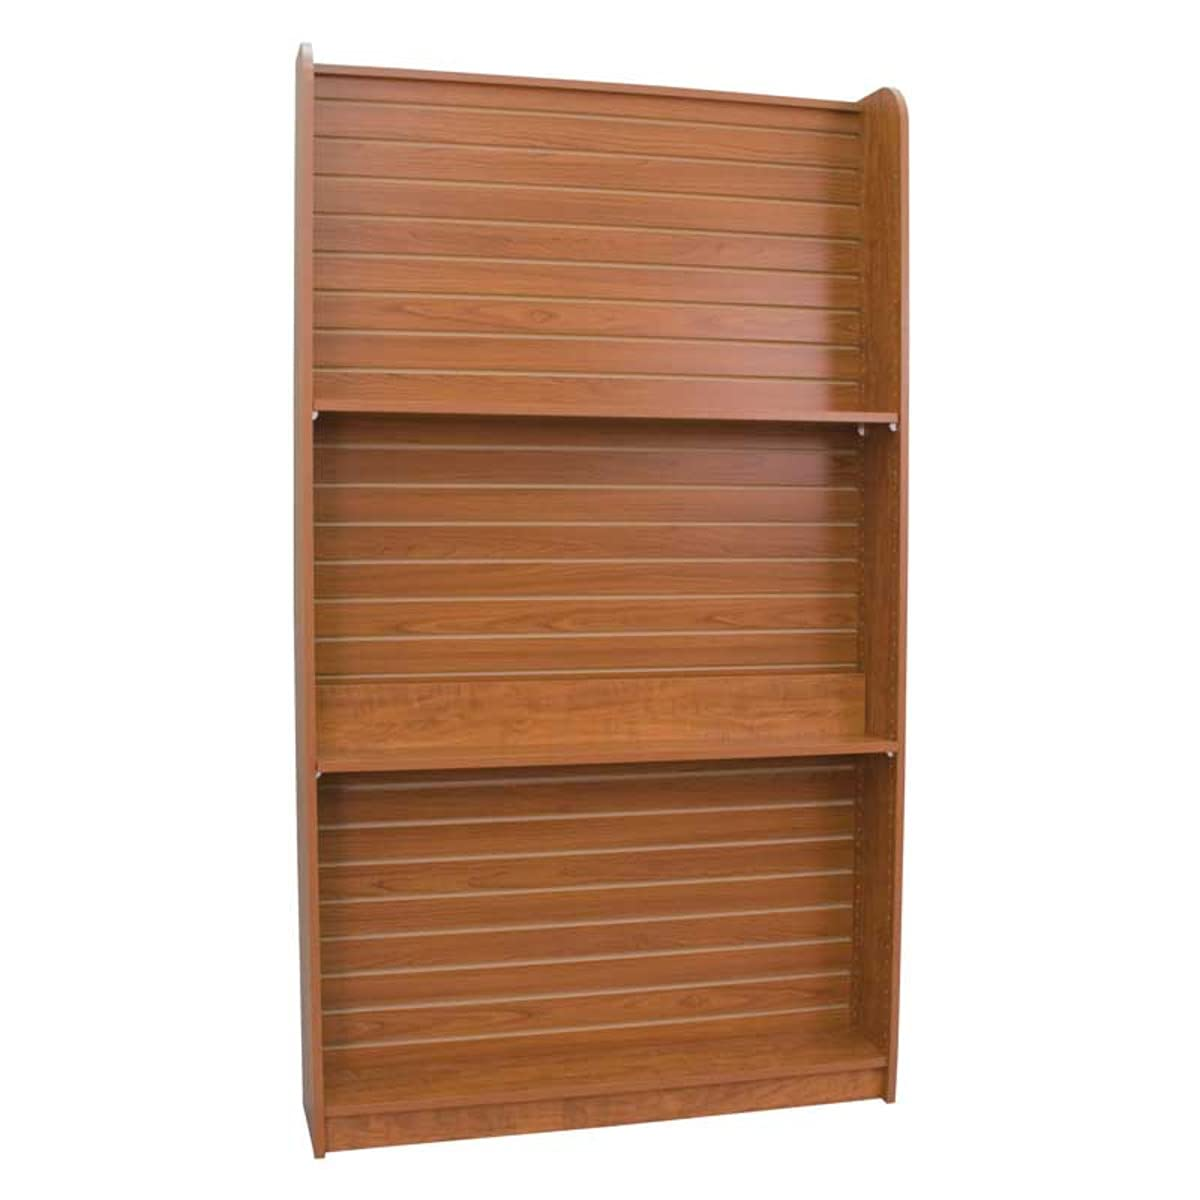 Wall Book Case with Cherry Slatwall Slotting Wx 48 List price Max 55% OFF 84 H Measures